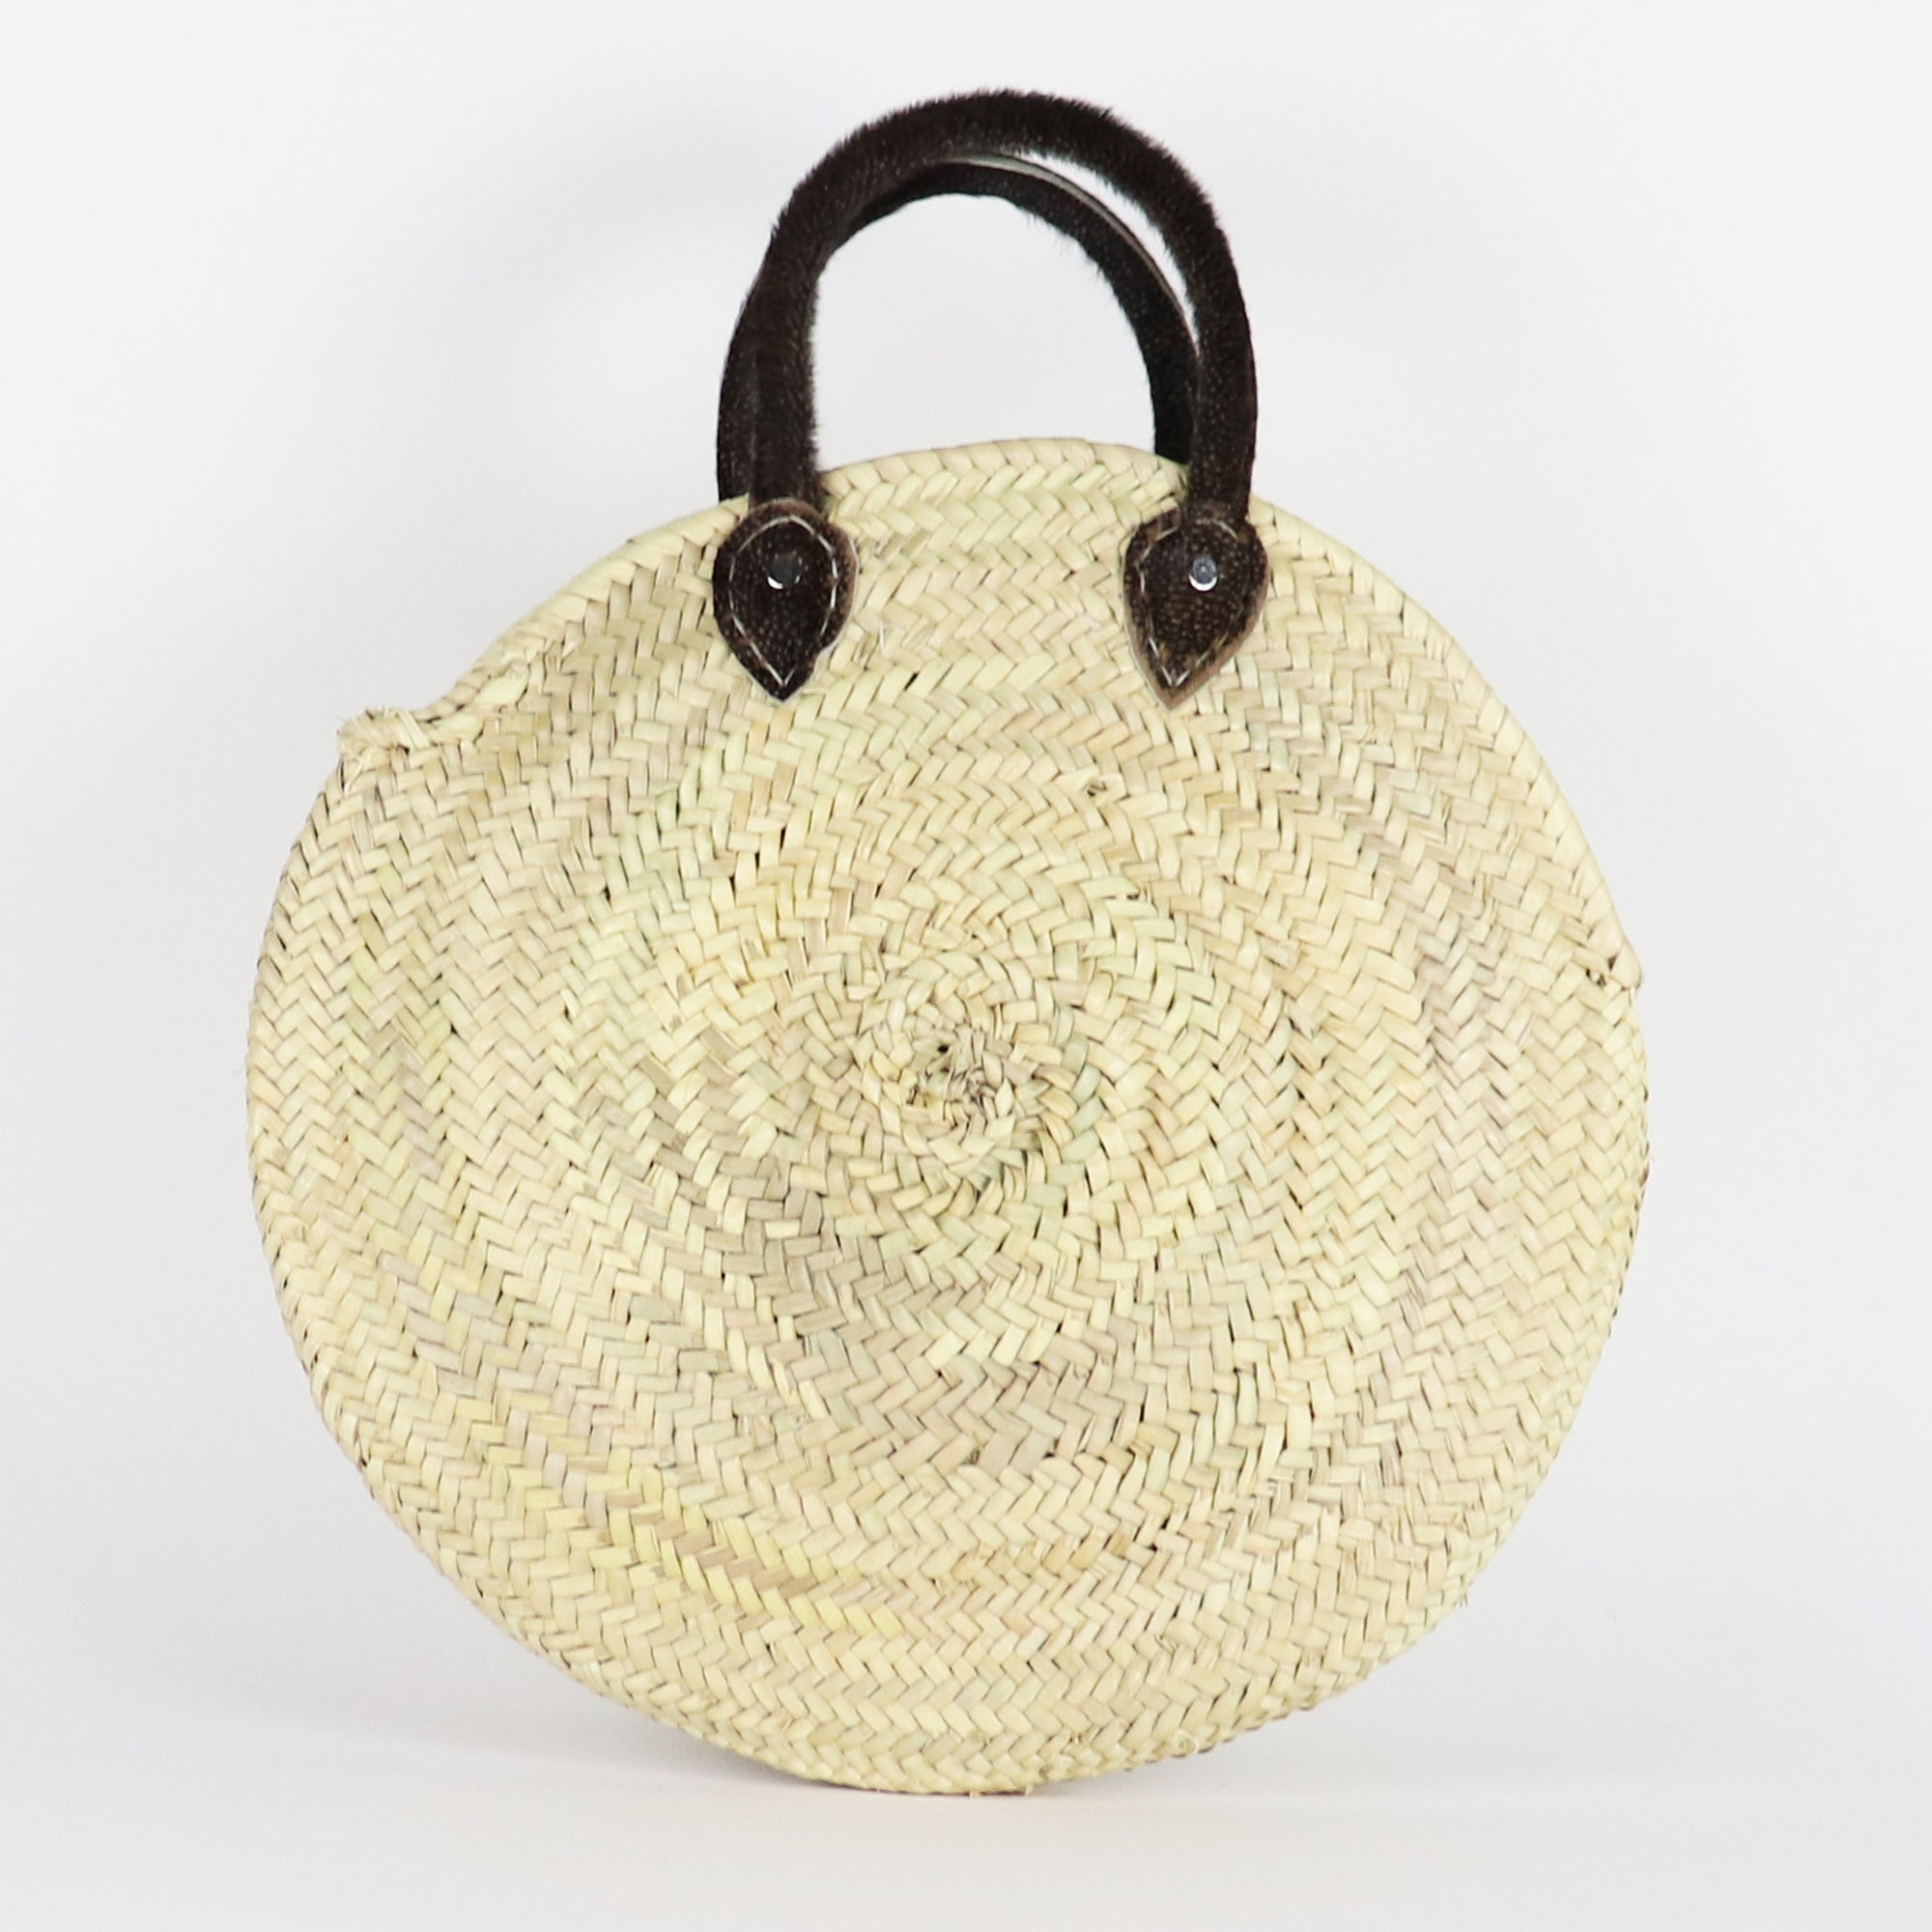 Furry round straw bag, French Basket, Beach, Farmers market, Sustainable bag, Classic, Basic